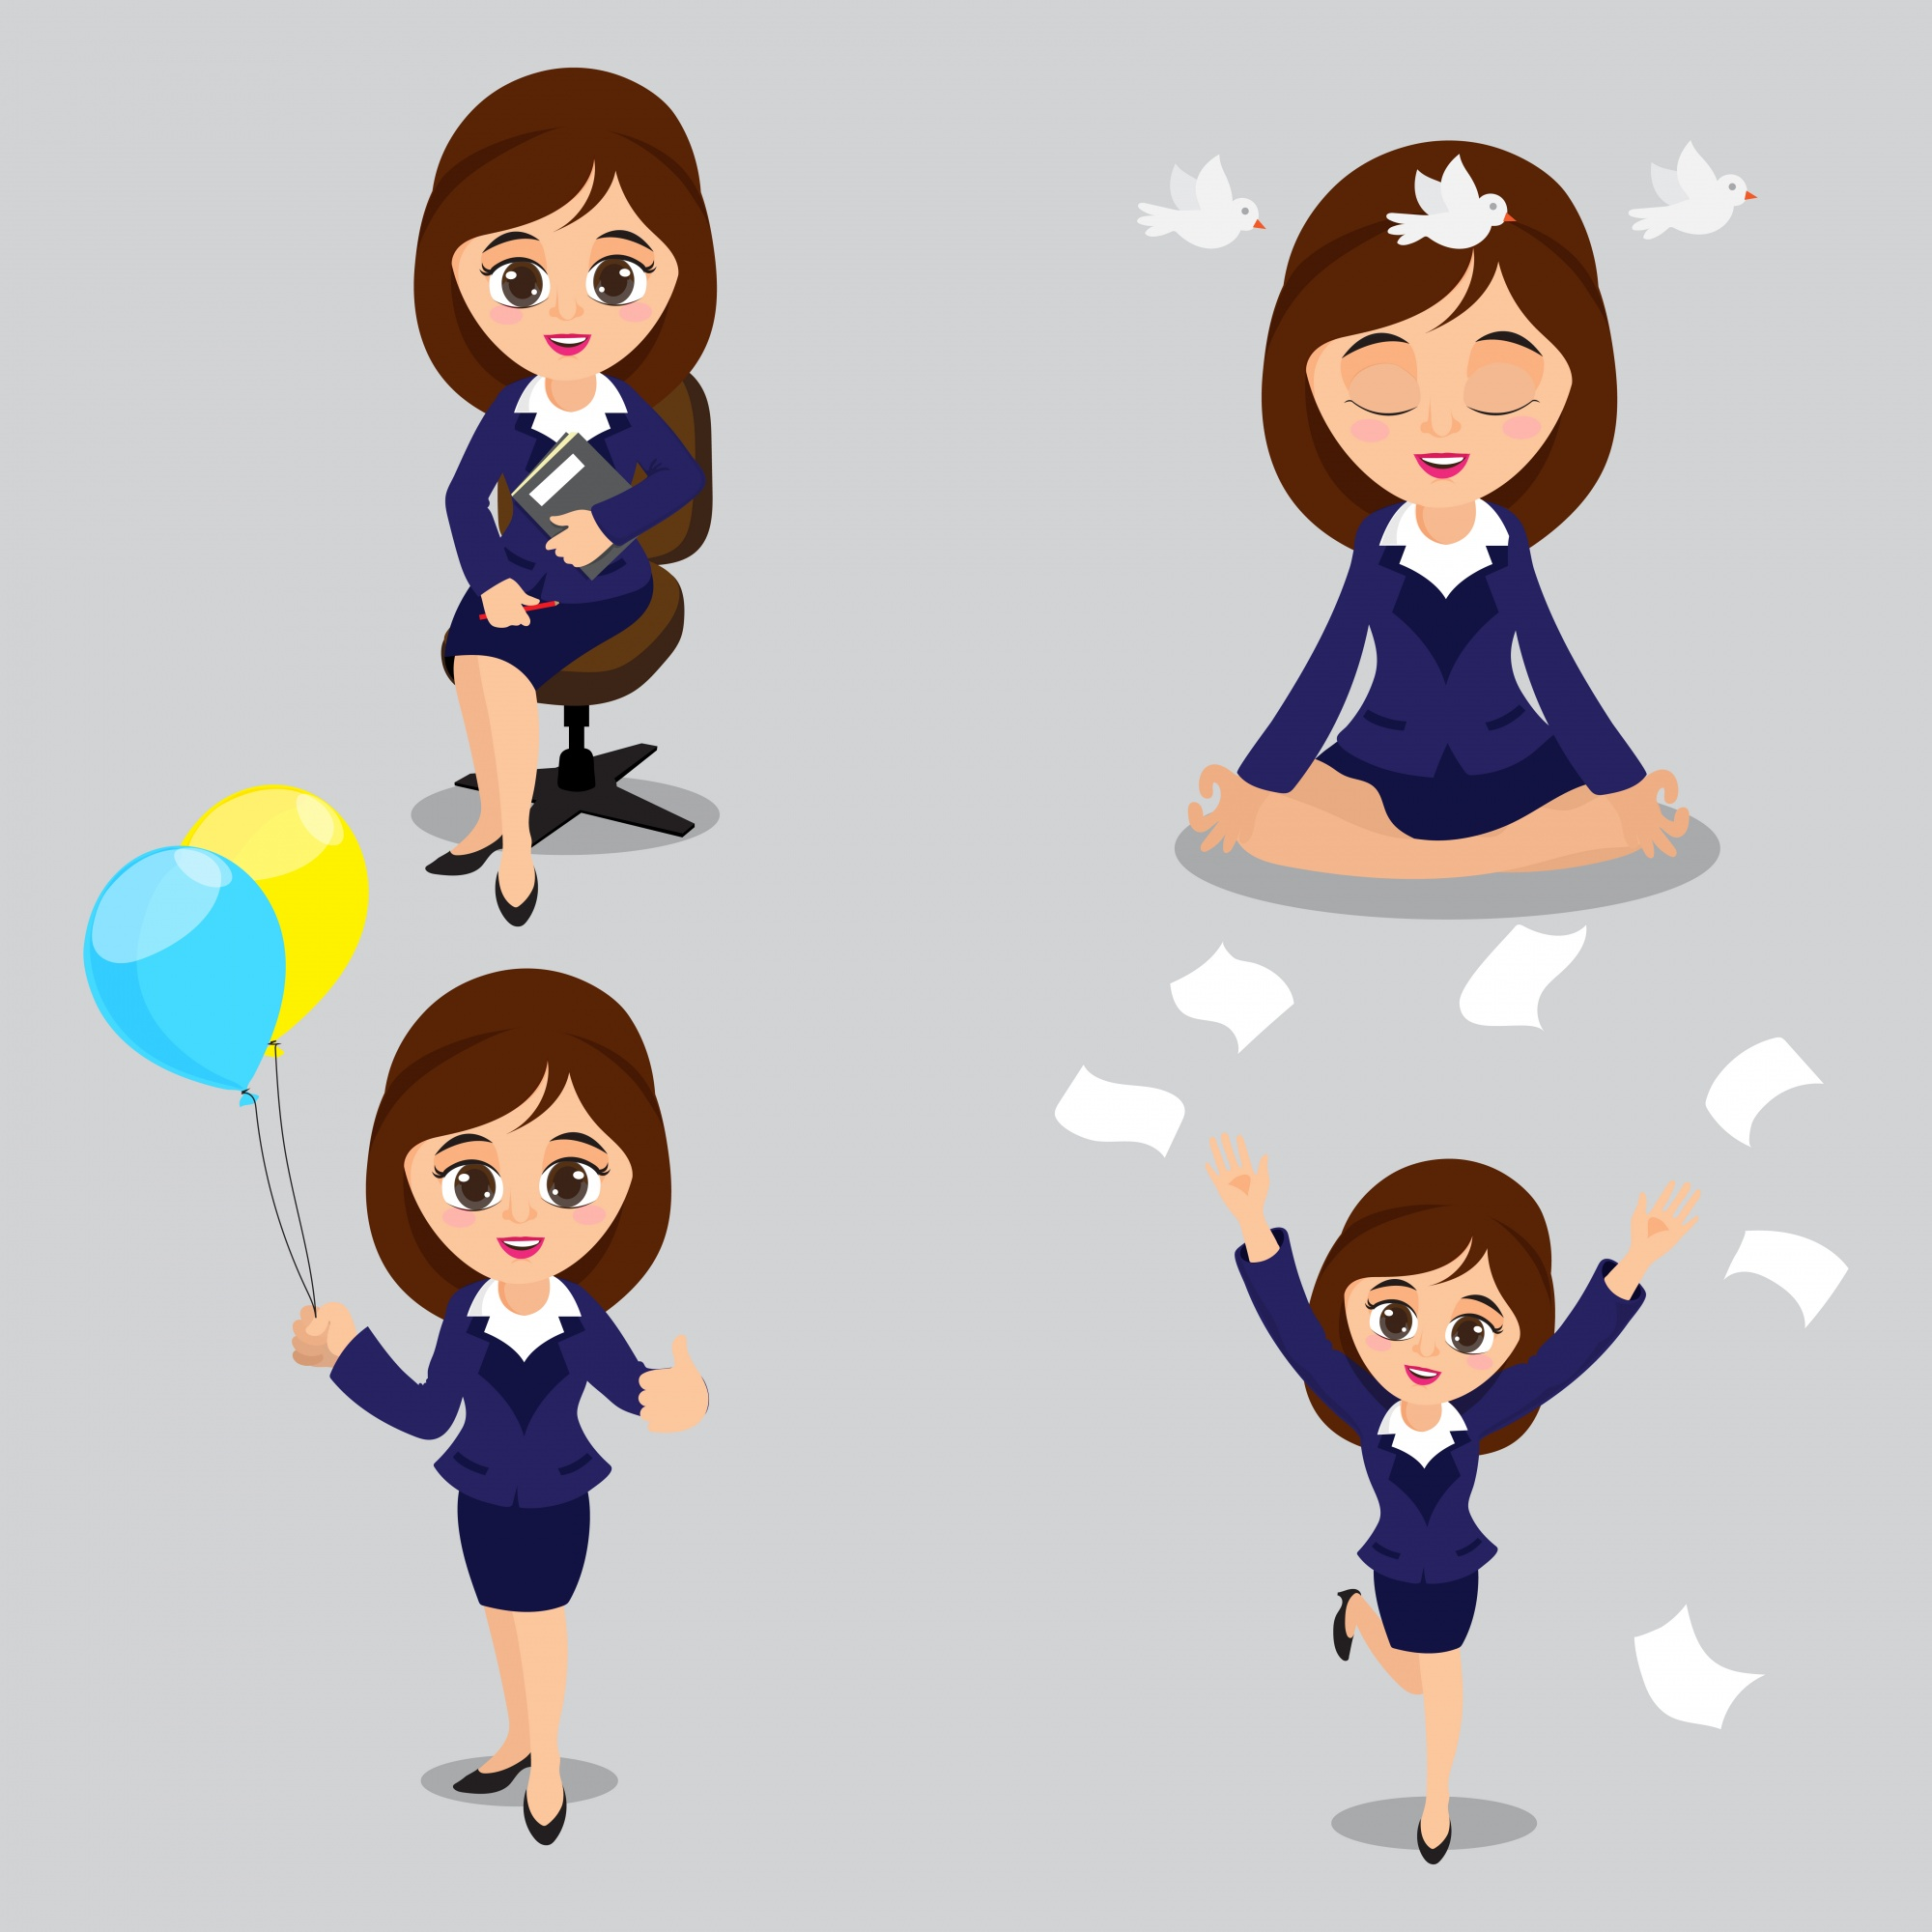 Cartoon illustration of Young Business Women in four different poses